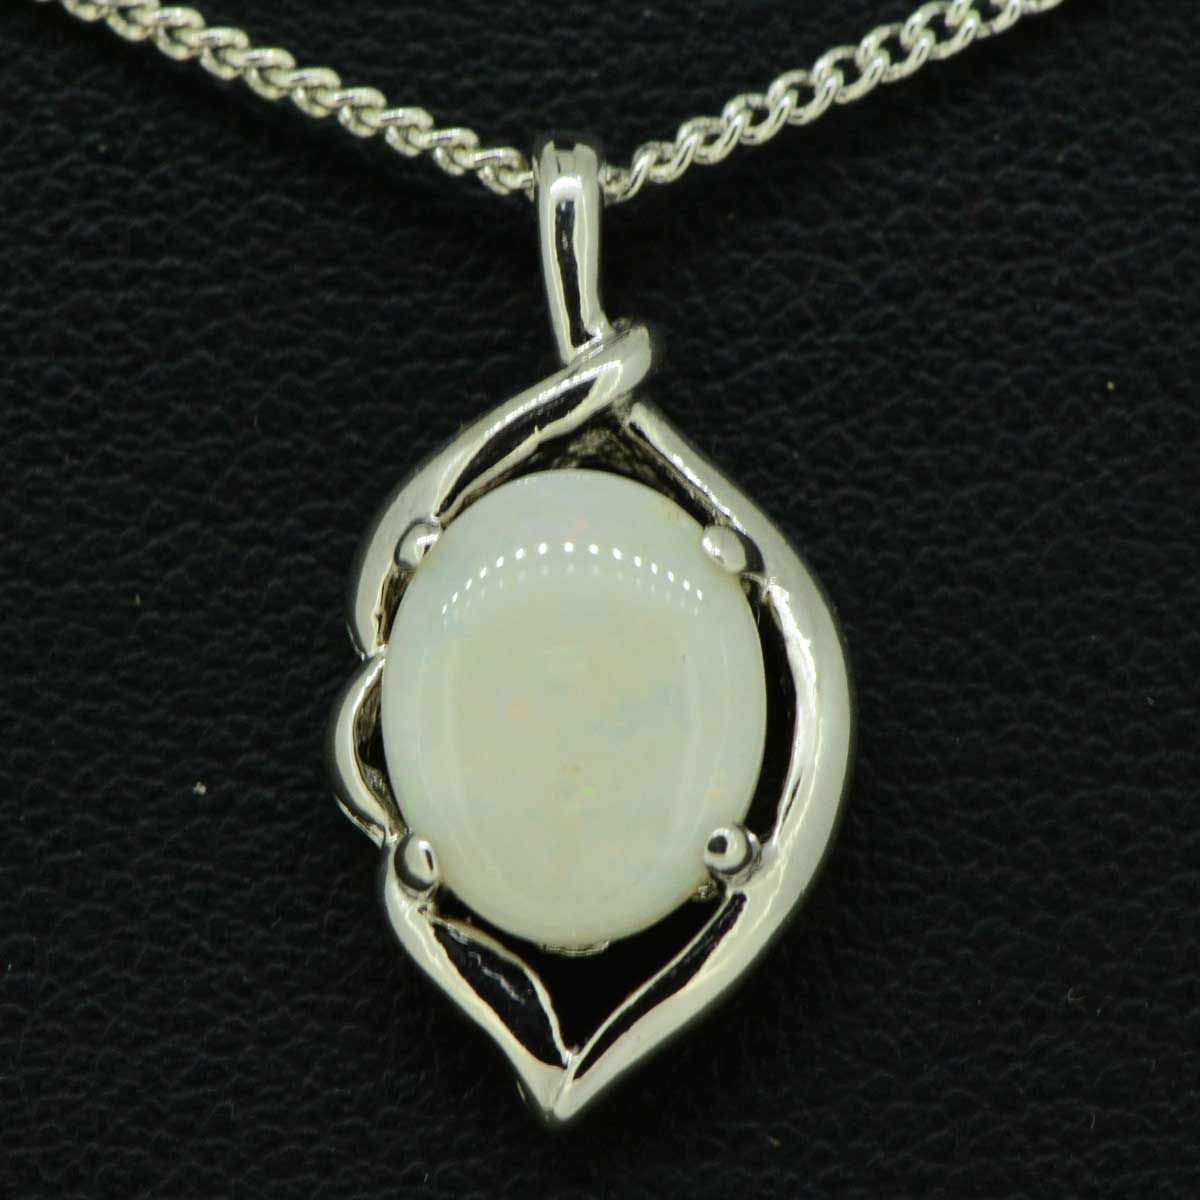 STERLING SILVER SOLID OPAL 10mmx8mm, PENDANT